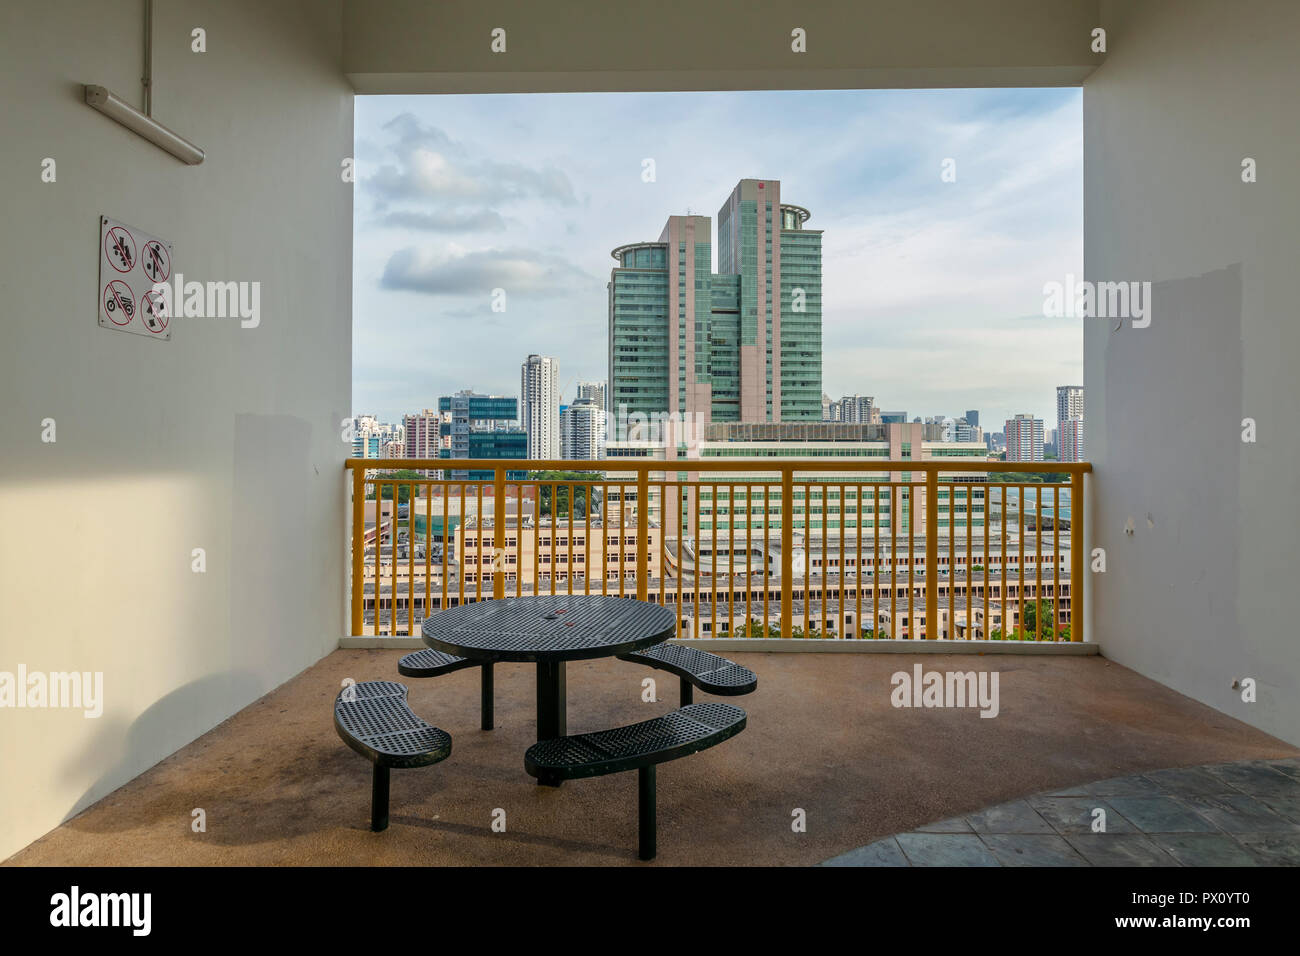 Toa Payoh HDB Hub Commercial Complex - Stock Image